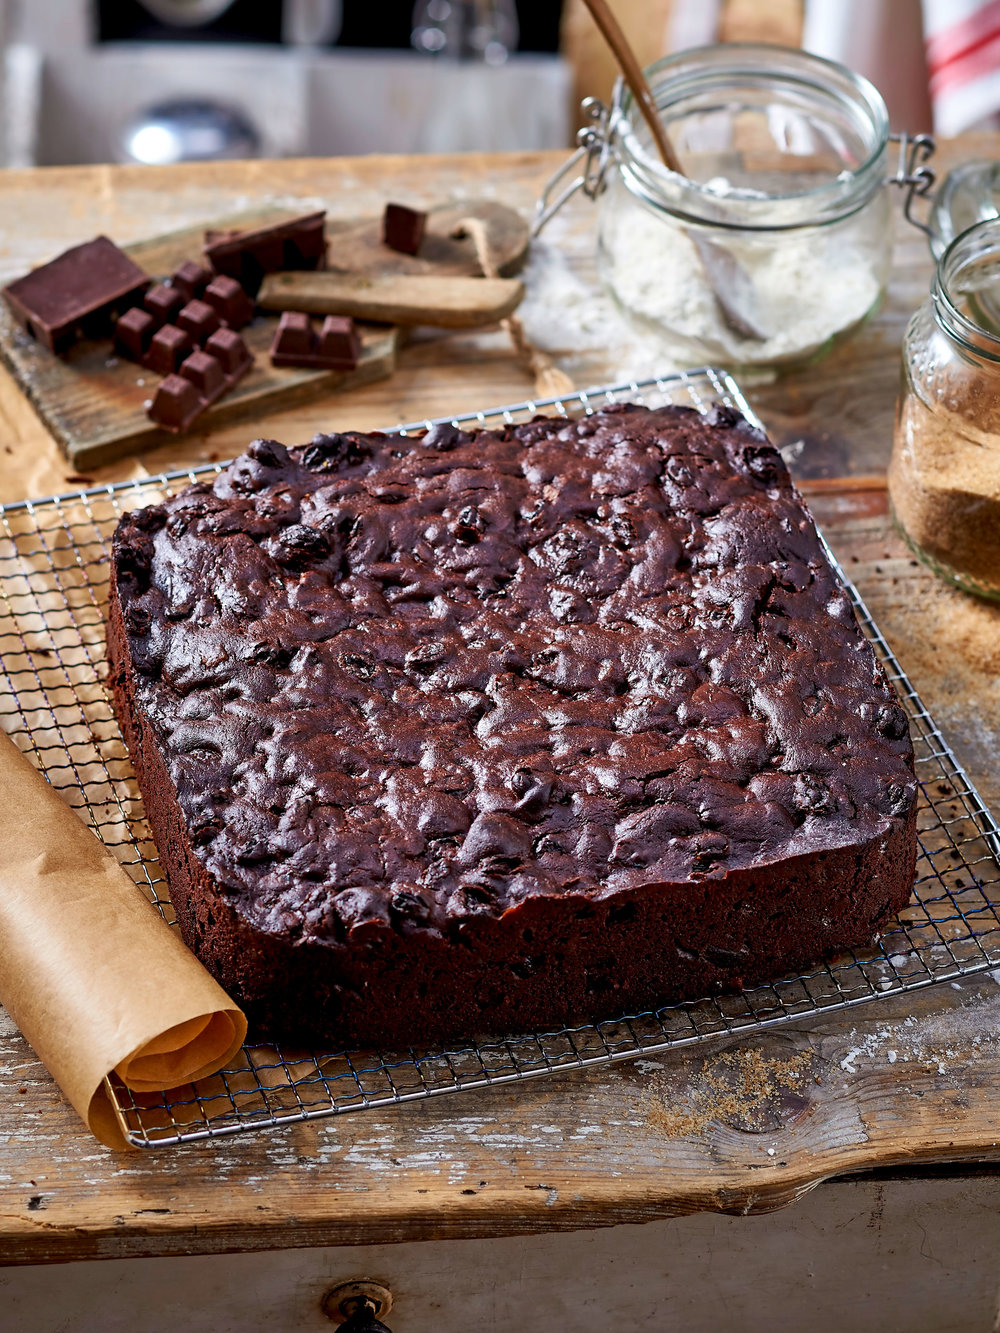 Not quite a traditional Christmas cake – this one is made with chocolate.